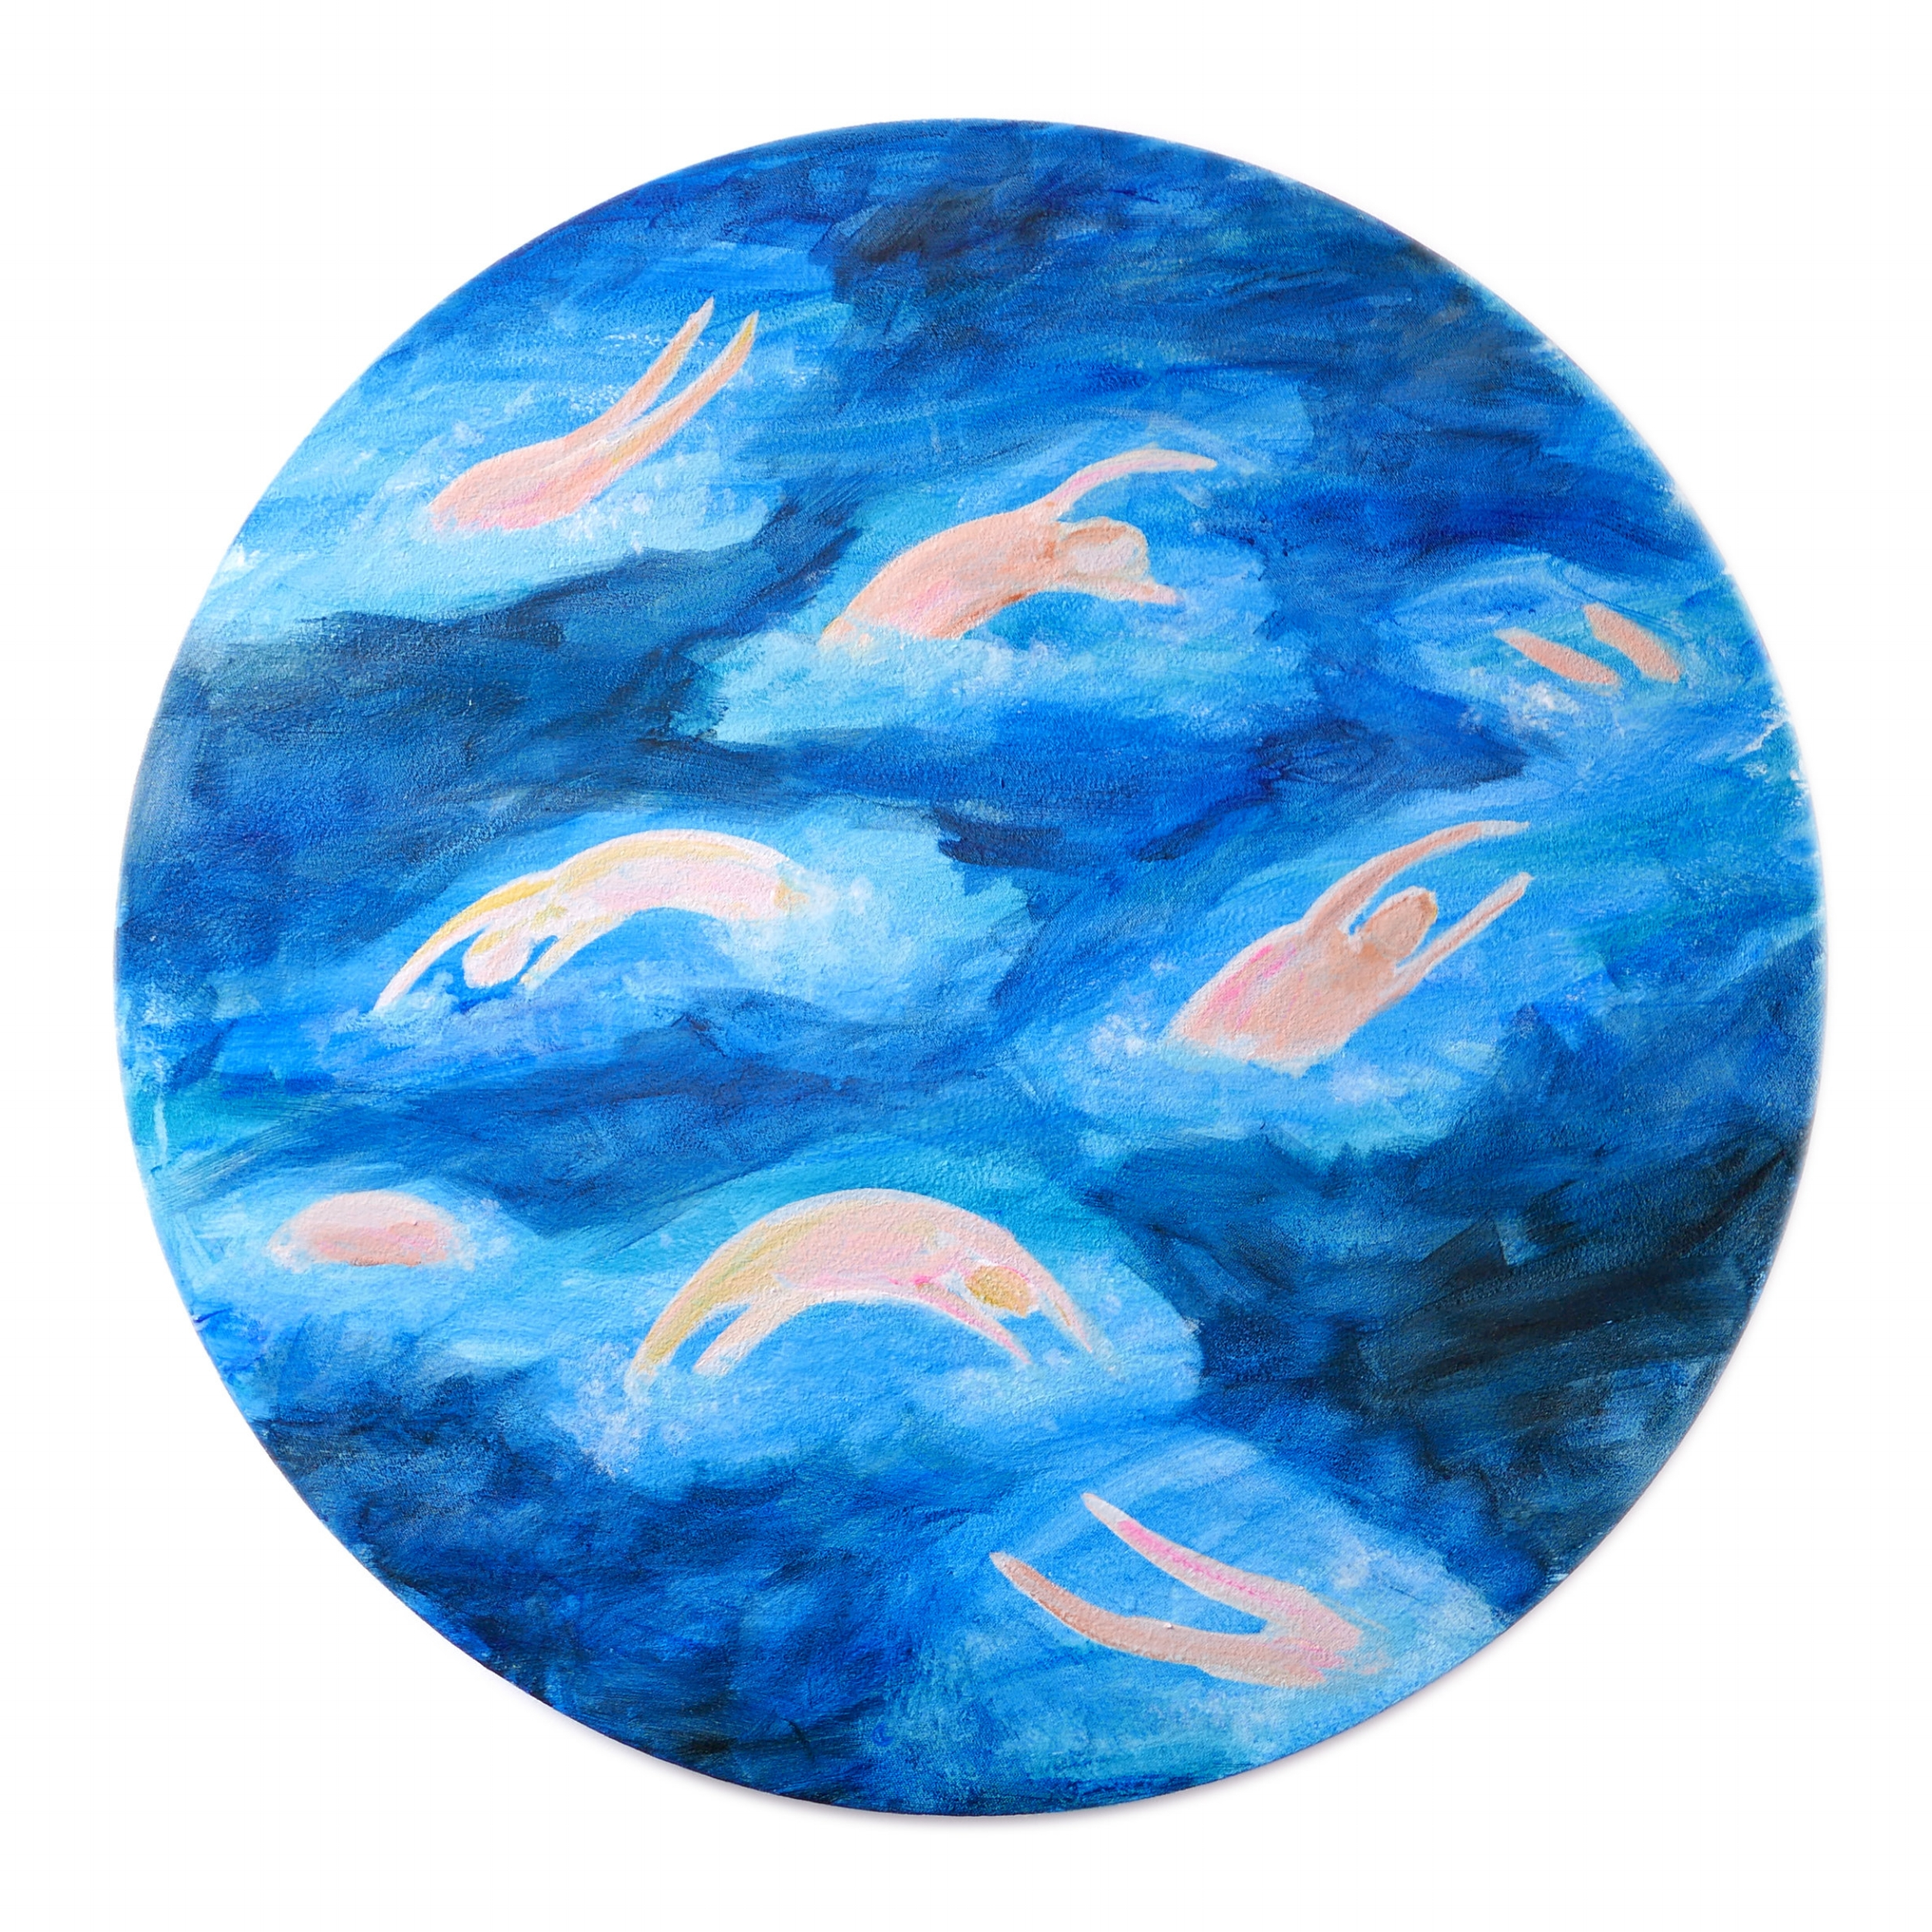 Your memories are little fish by Claire de Lune 2018, acrylic gesso and satin glaze on stretched linen, 80cm radius